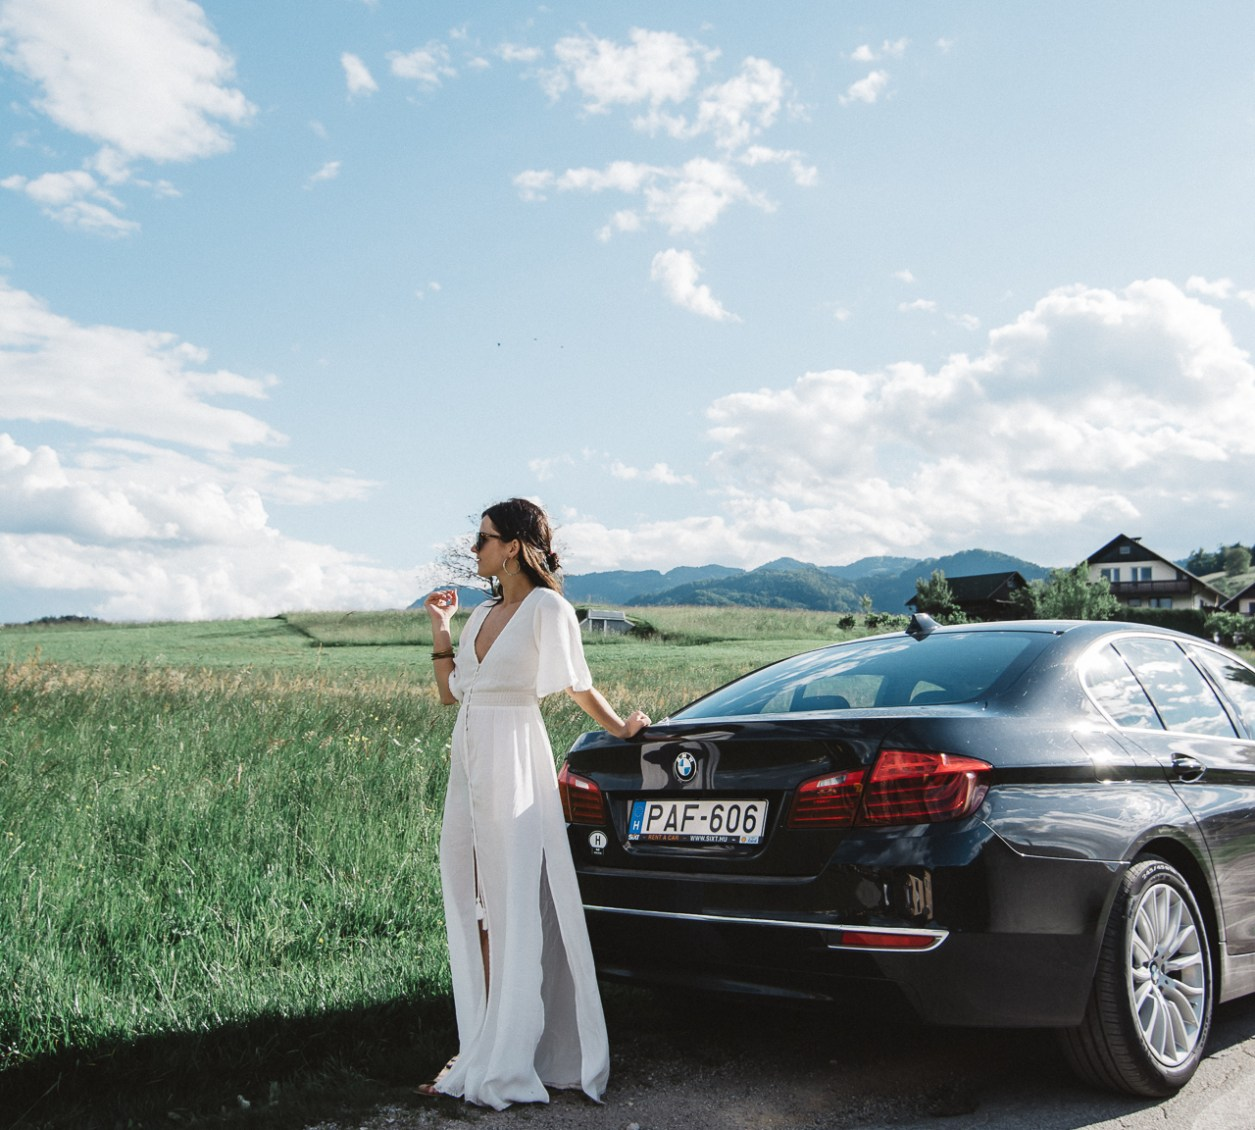 Sixt Rent A Car: How To Rent Luxury Cars At Economy Prices